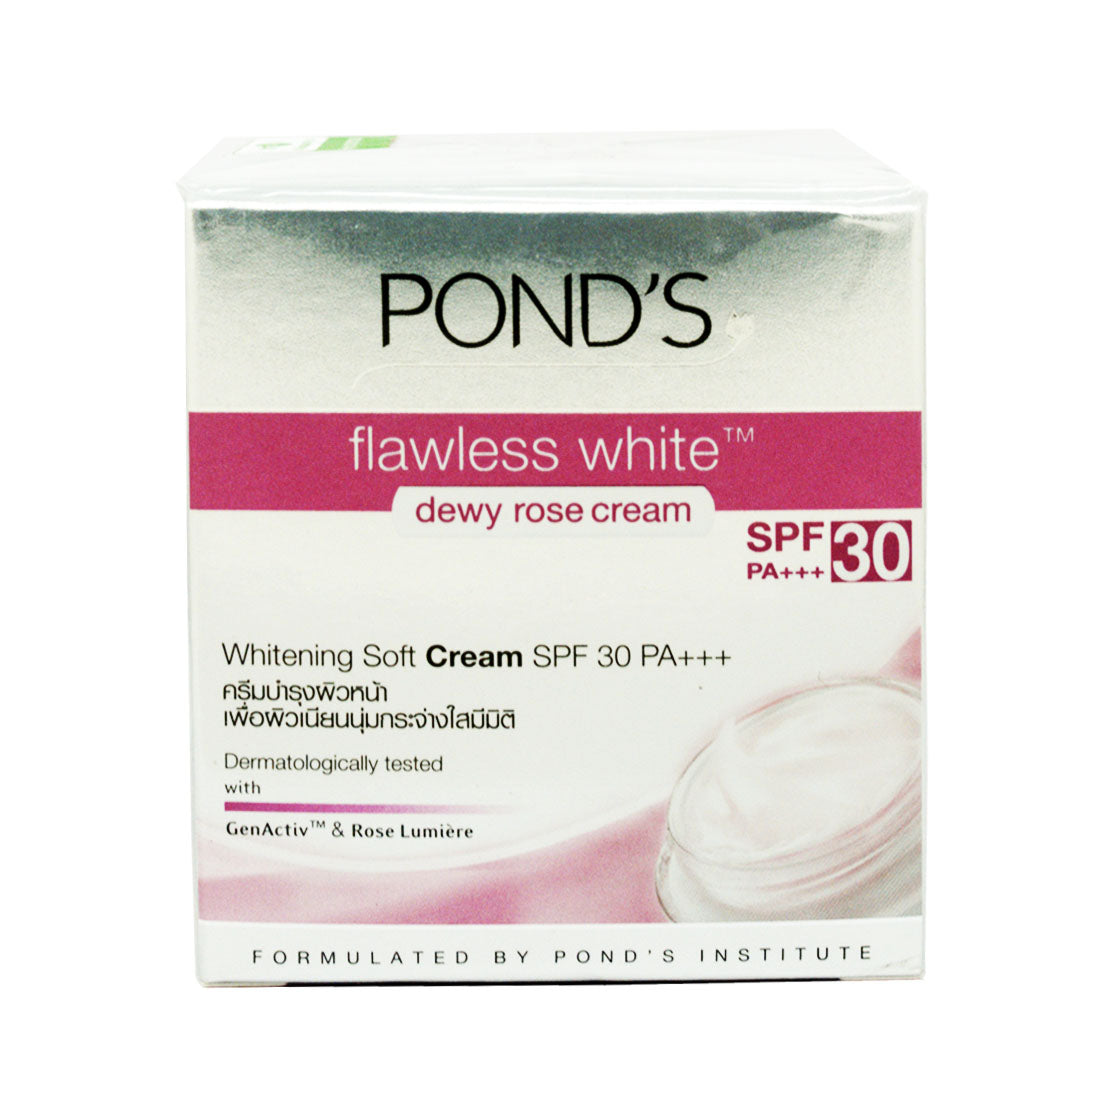 Pond's, Flawless White Dewy Rose Cream SPF30, 50 g